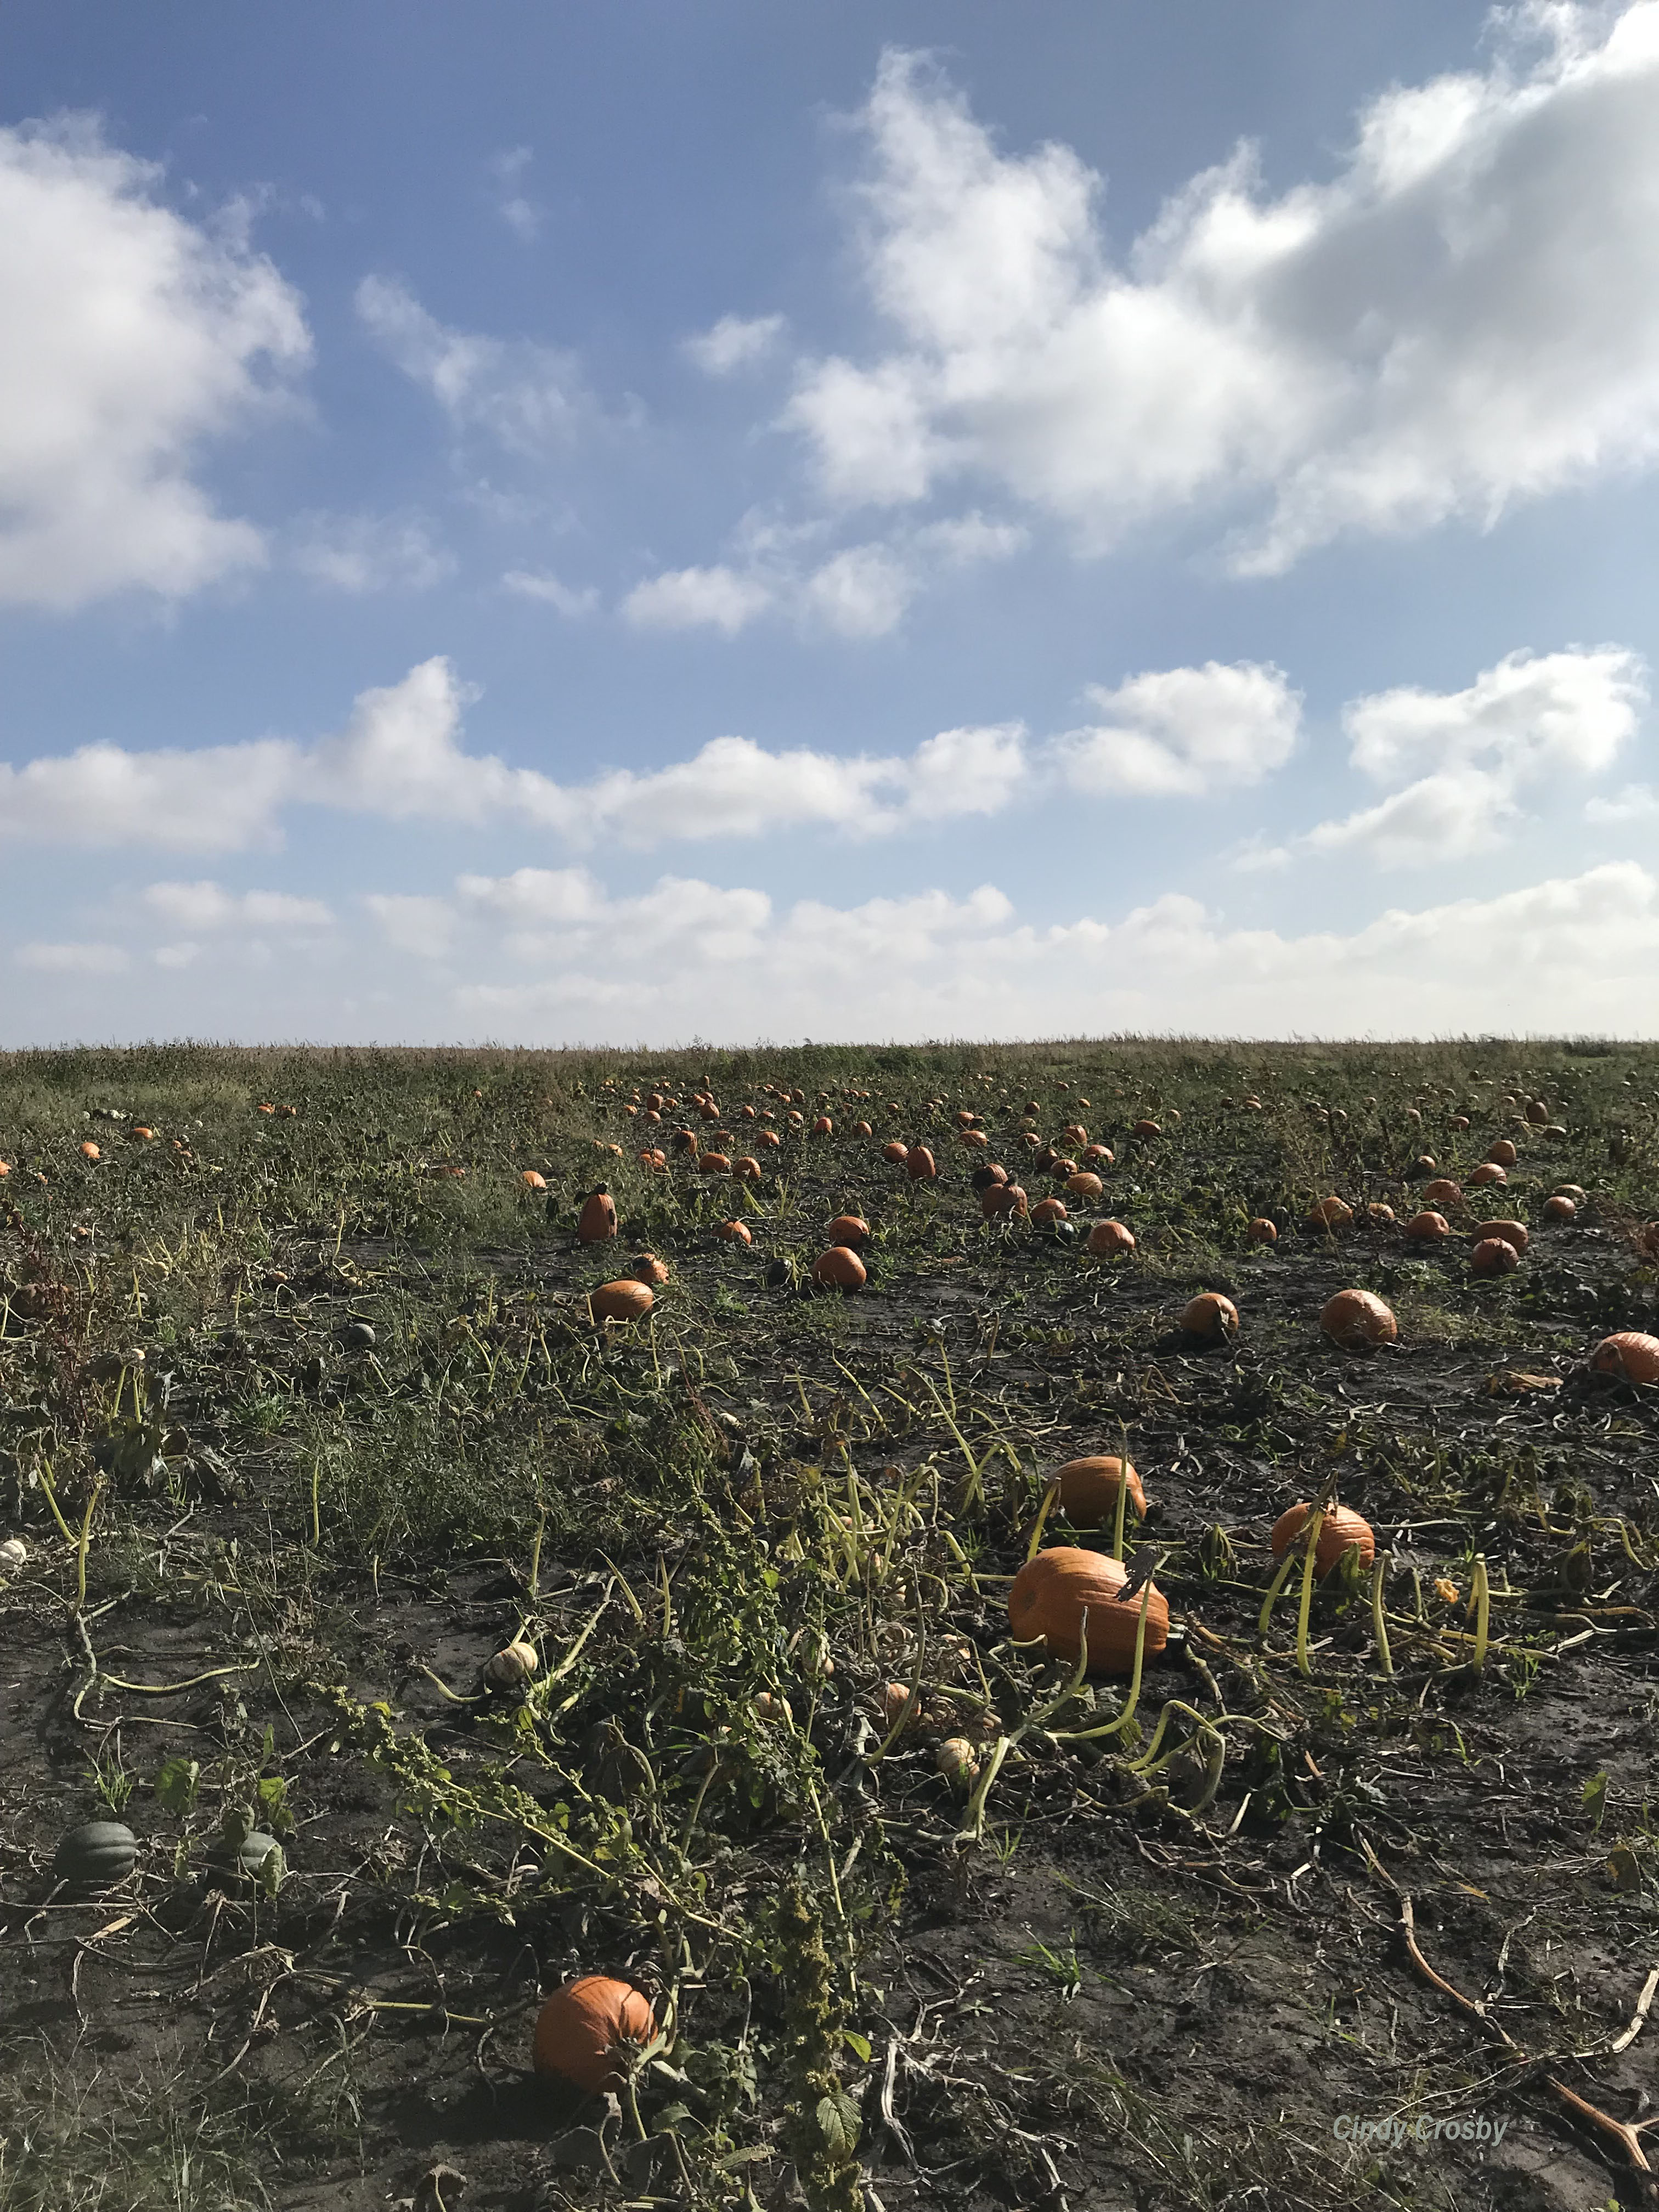 WMOctober in the Pumpkin Patch Malta IL 10-13-18.jpg